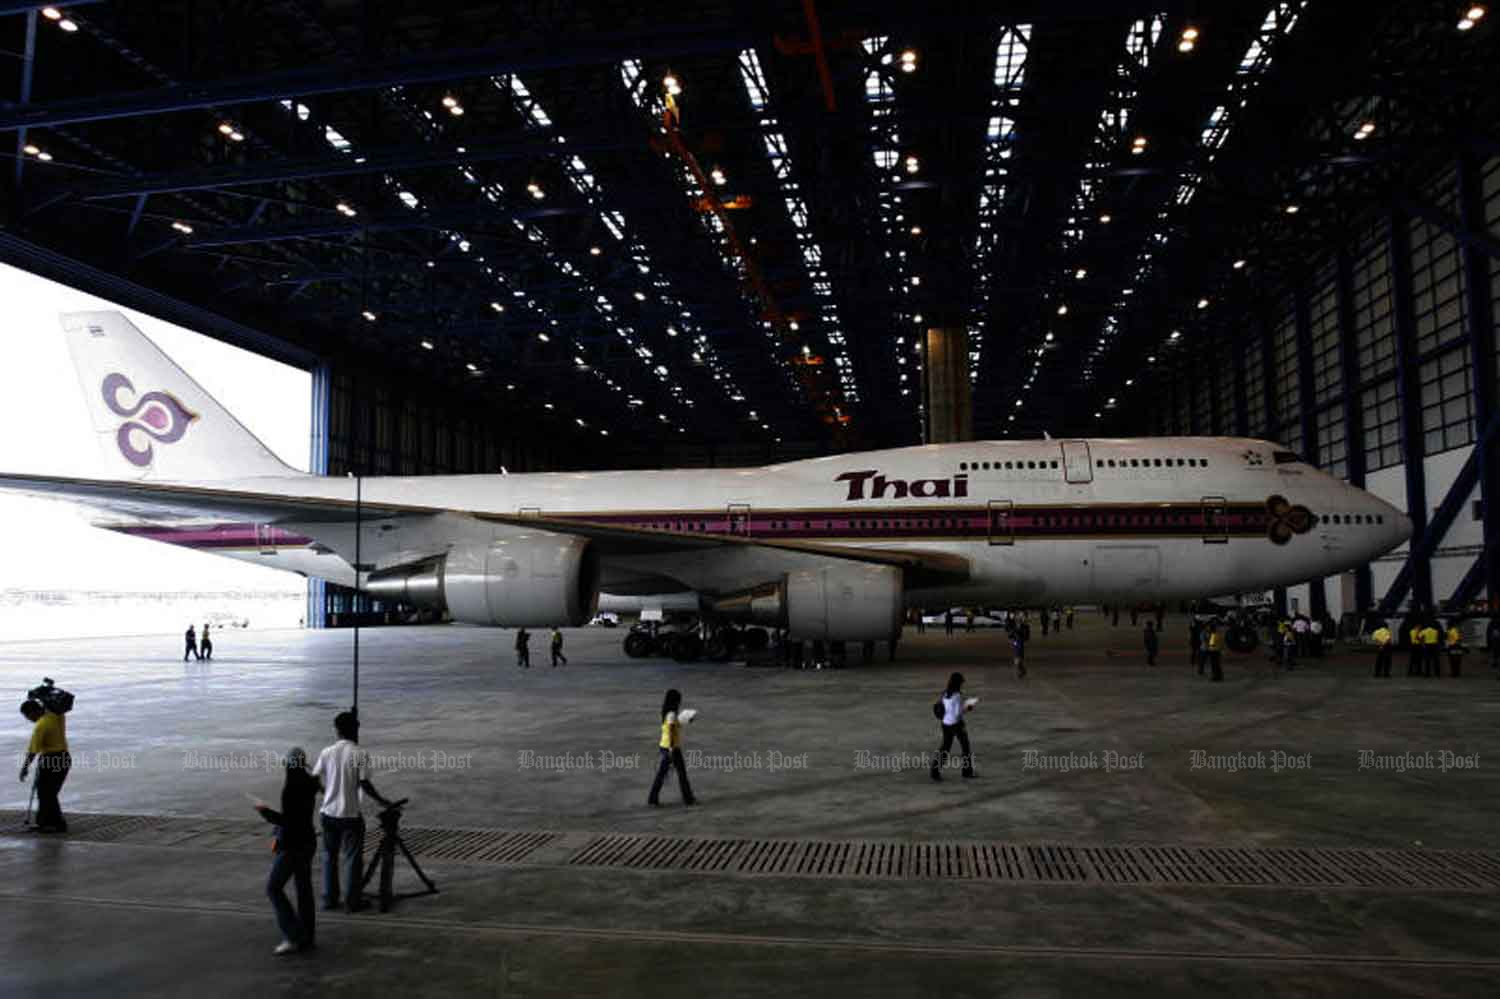 A Thai Airways International plane is seen at Suvarnabhumi airport's maintenance centre in Samut Prakan province. The airline's president on Tuesday voiced serious concern about the loss-ridden national airline's future and cited this aircraft waiting for repairs as an example of why it was losing so much money. (Bangkok Post file photo)